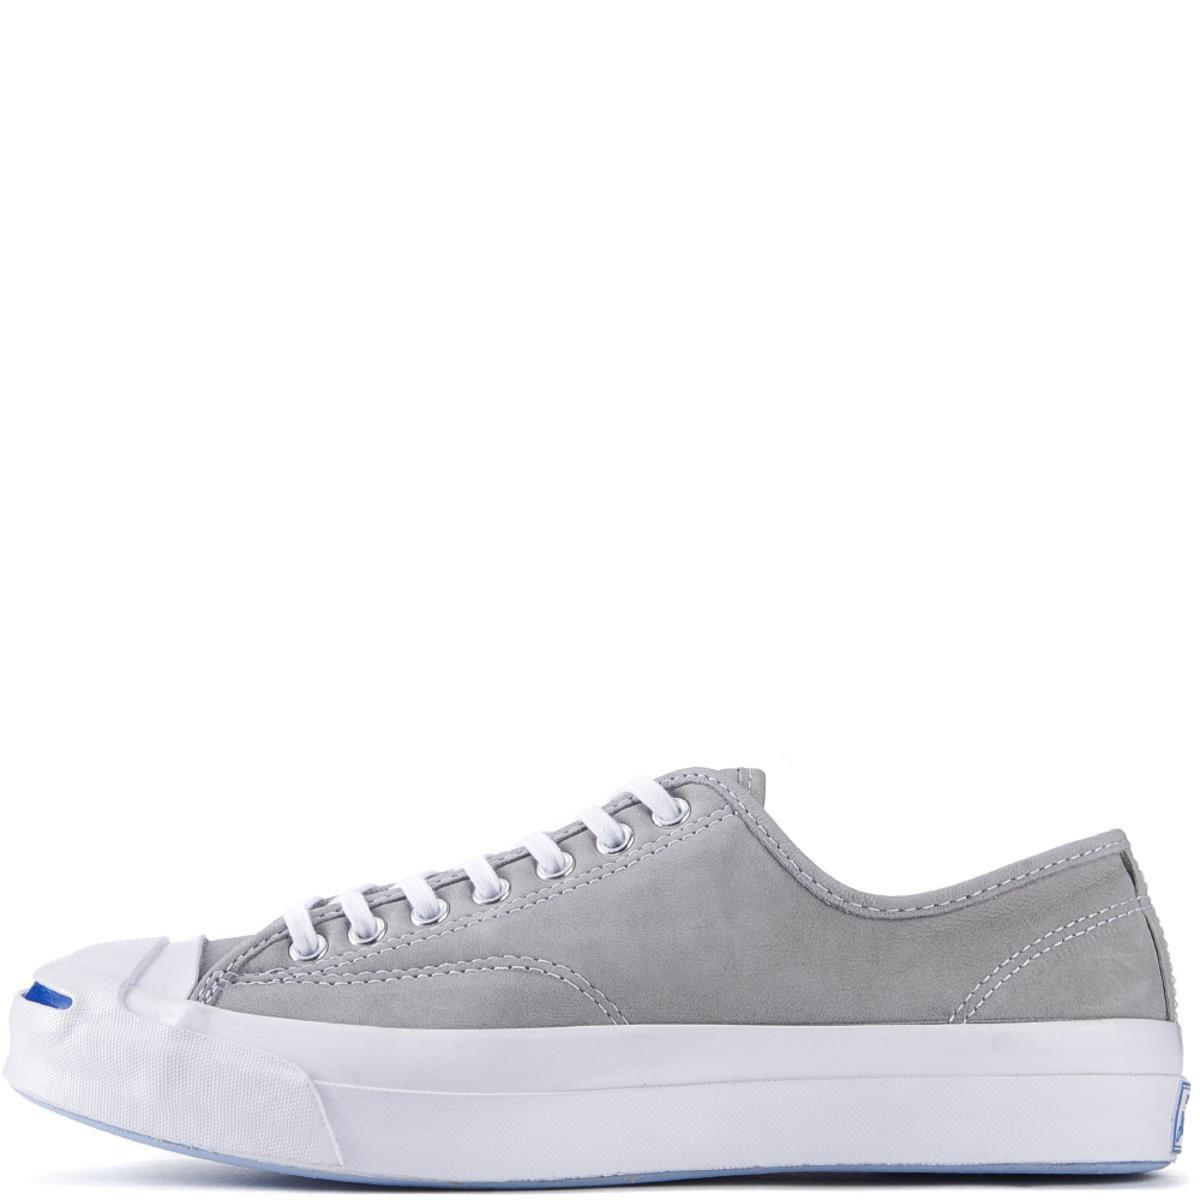 2b4d69258e1407 Lyst - Converse Jack Purcell Signature Nubuck Dolphin White Sneakers ...